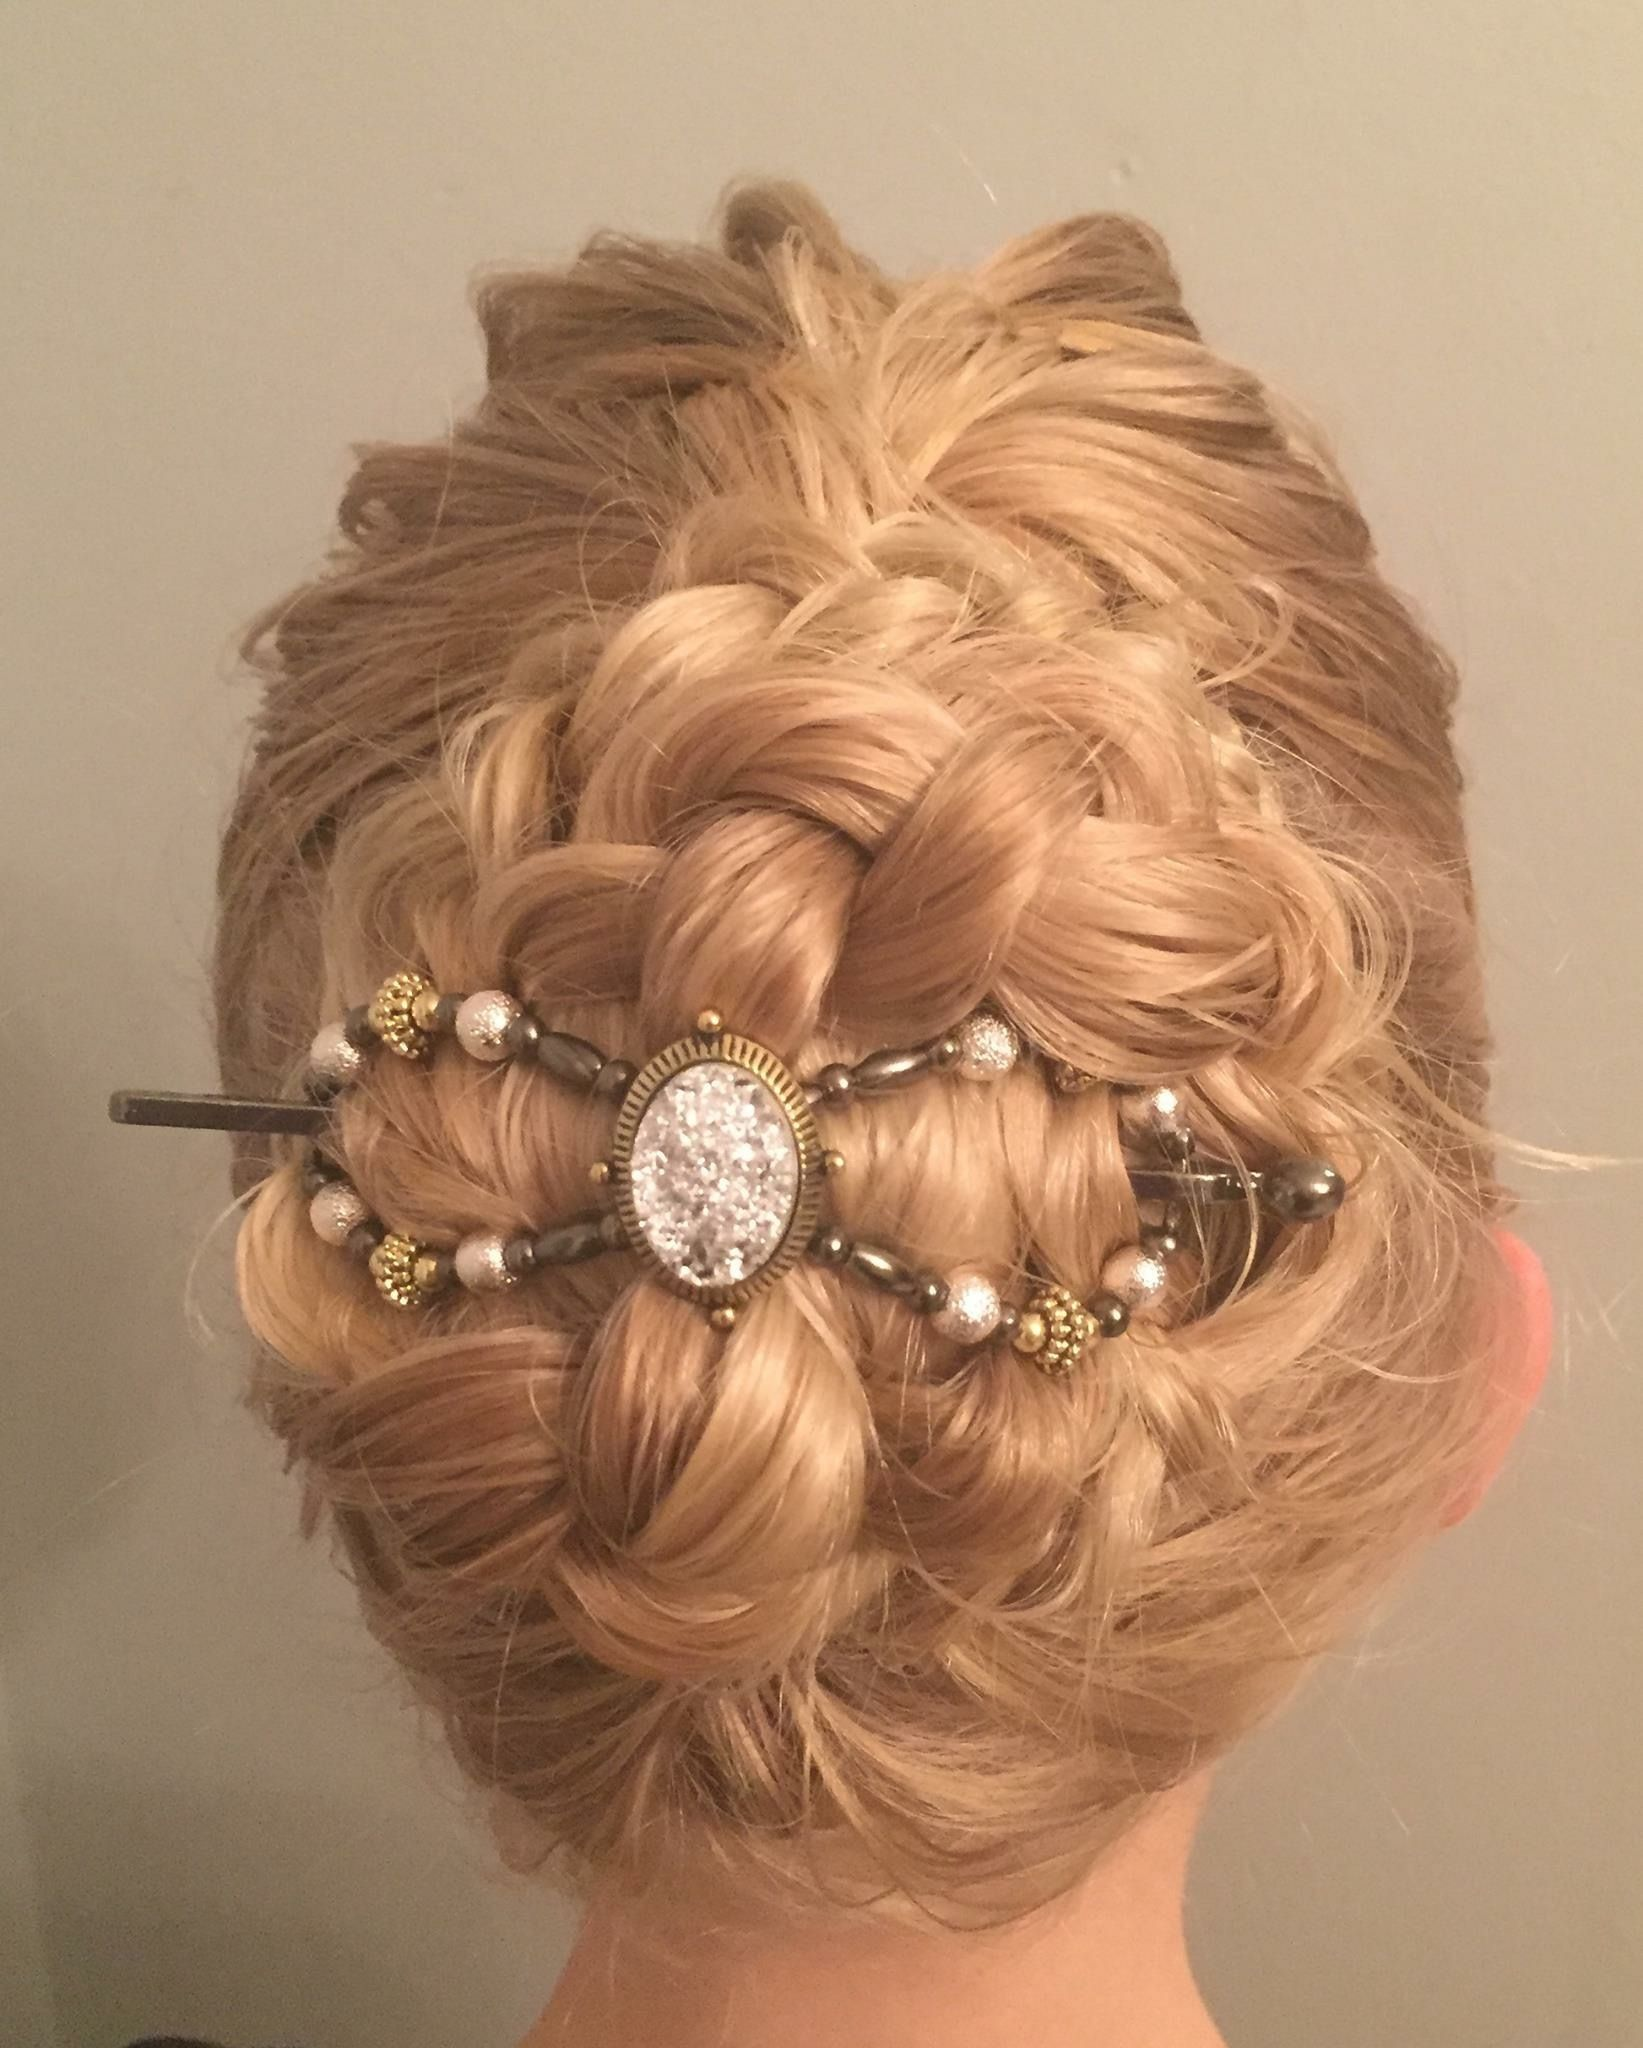 Gorgeous braided bun updo styled with 'Starlight', a bright sparkly flexi  clip from Lilla Rose. Prom hairstyles. Wedding hair. Formal updos. |  Gesicht, Frisuren